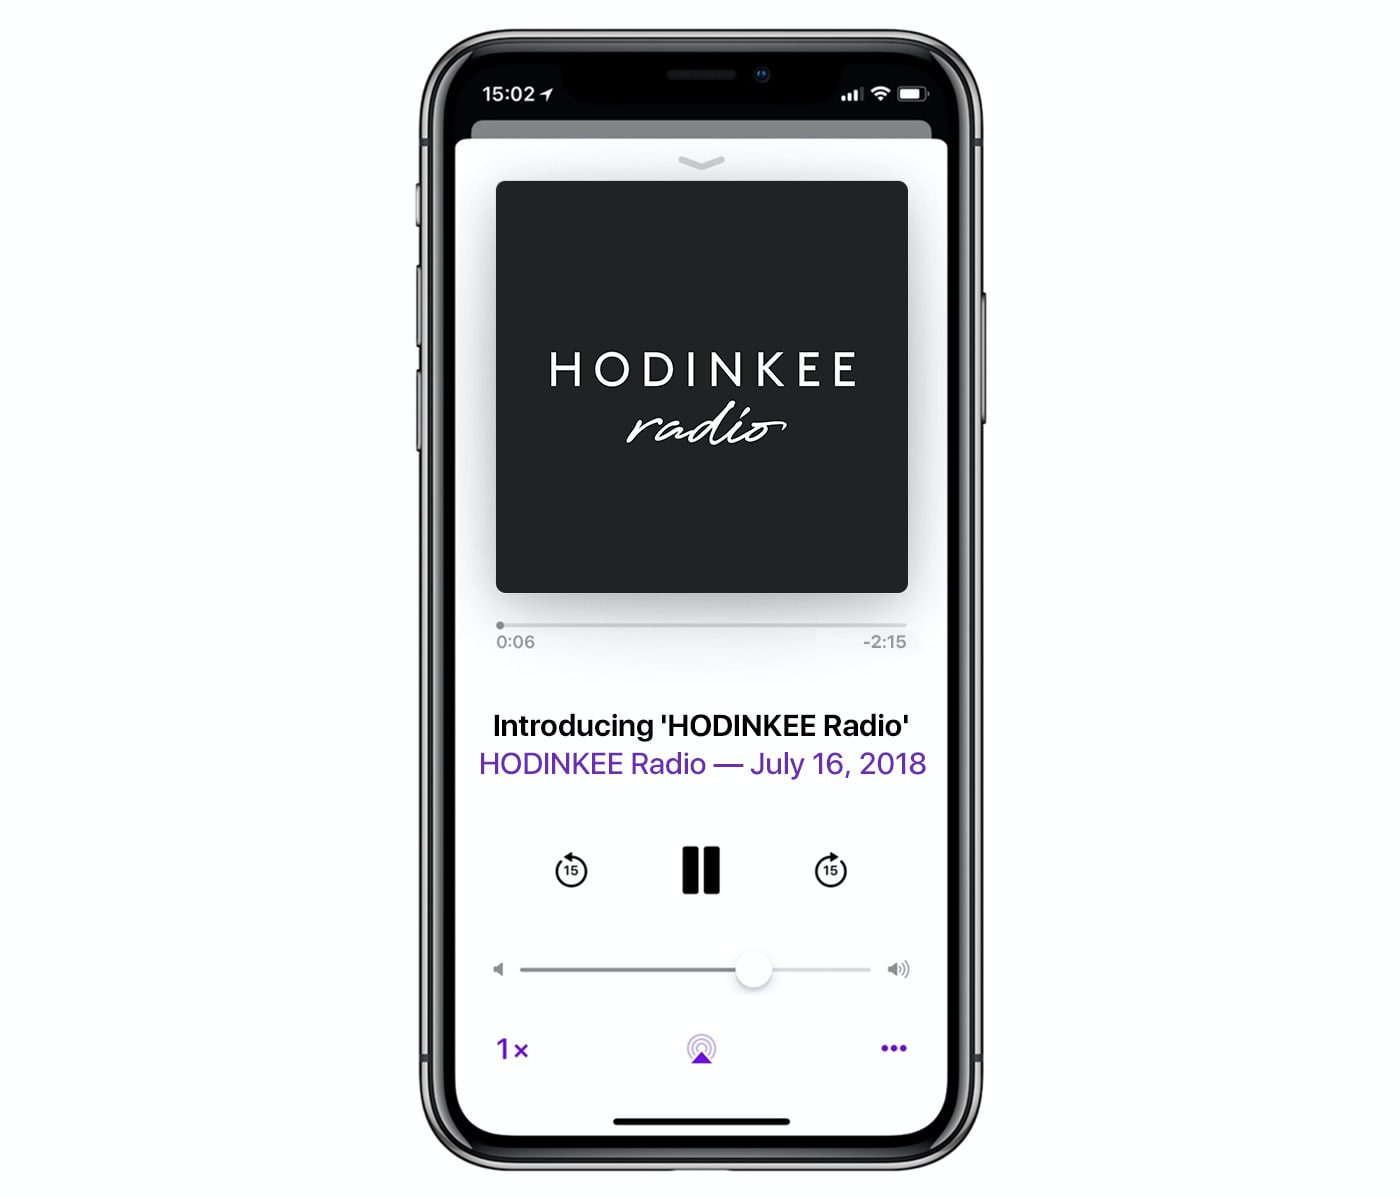 Introducing: HODINKEE Radio iphone screenshot 1